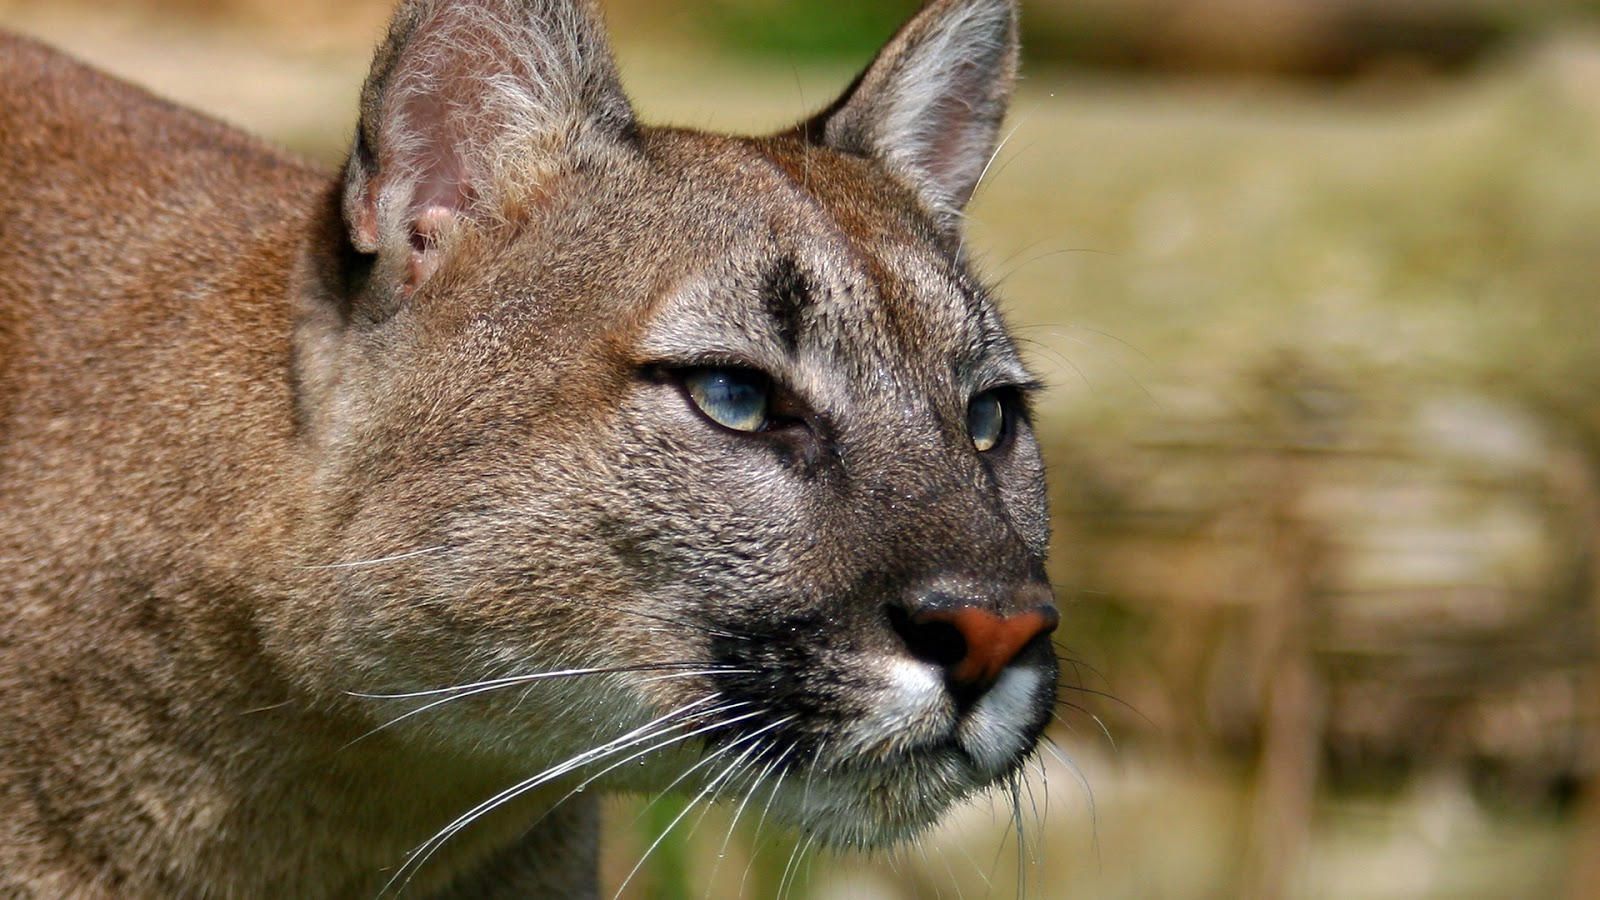 mountain lion cougar hd wallpapers hd wallpapers high definition free background. Black Bedroom Furniture Sets. Home Design Ideas